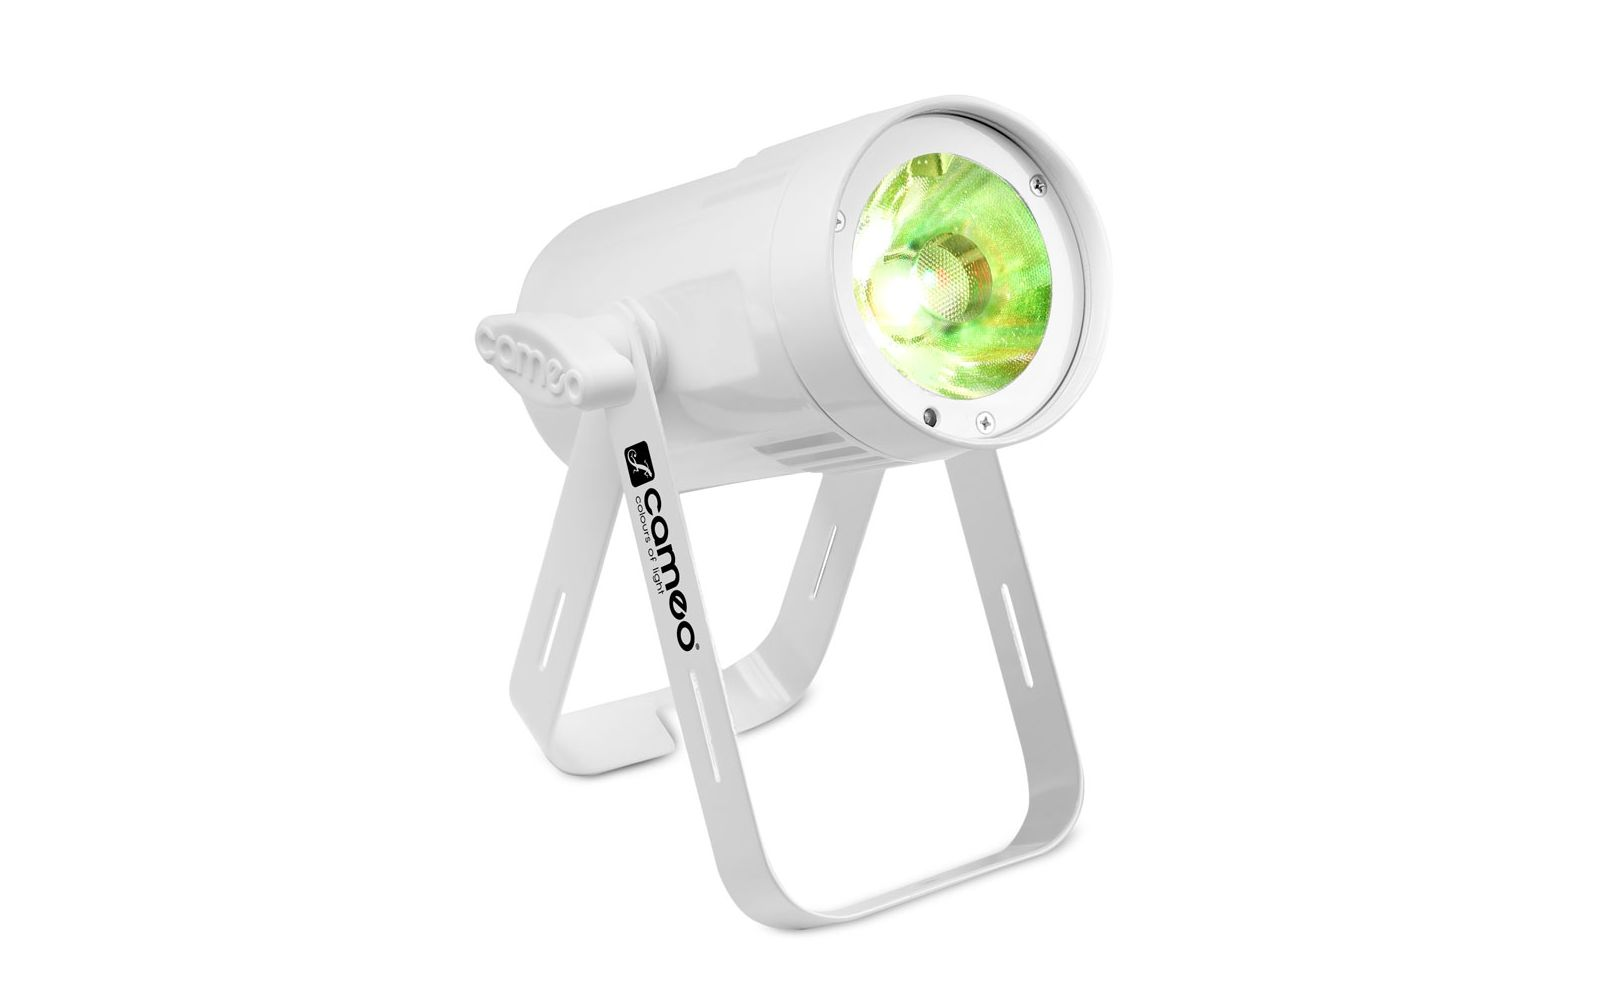 cameo-q-spot-15-rgbw-wh-kompakter-spot-mit-15w-rgbw-led-in-weiayer-ausfa-hrung